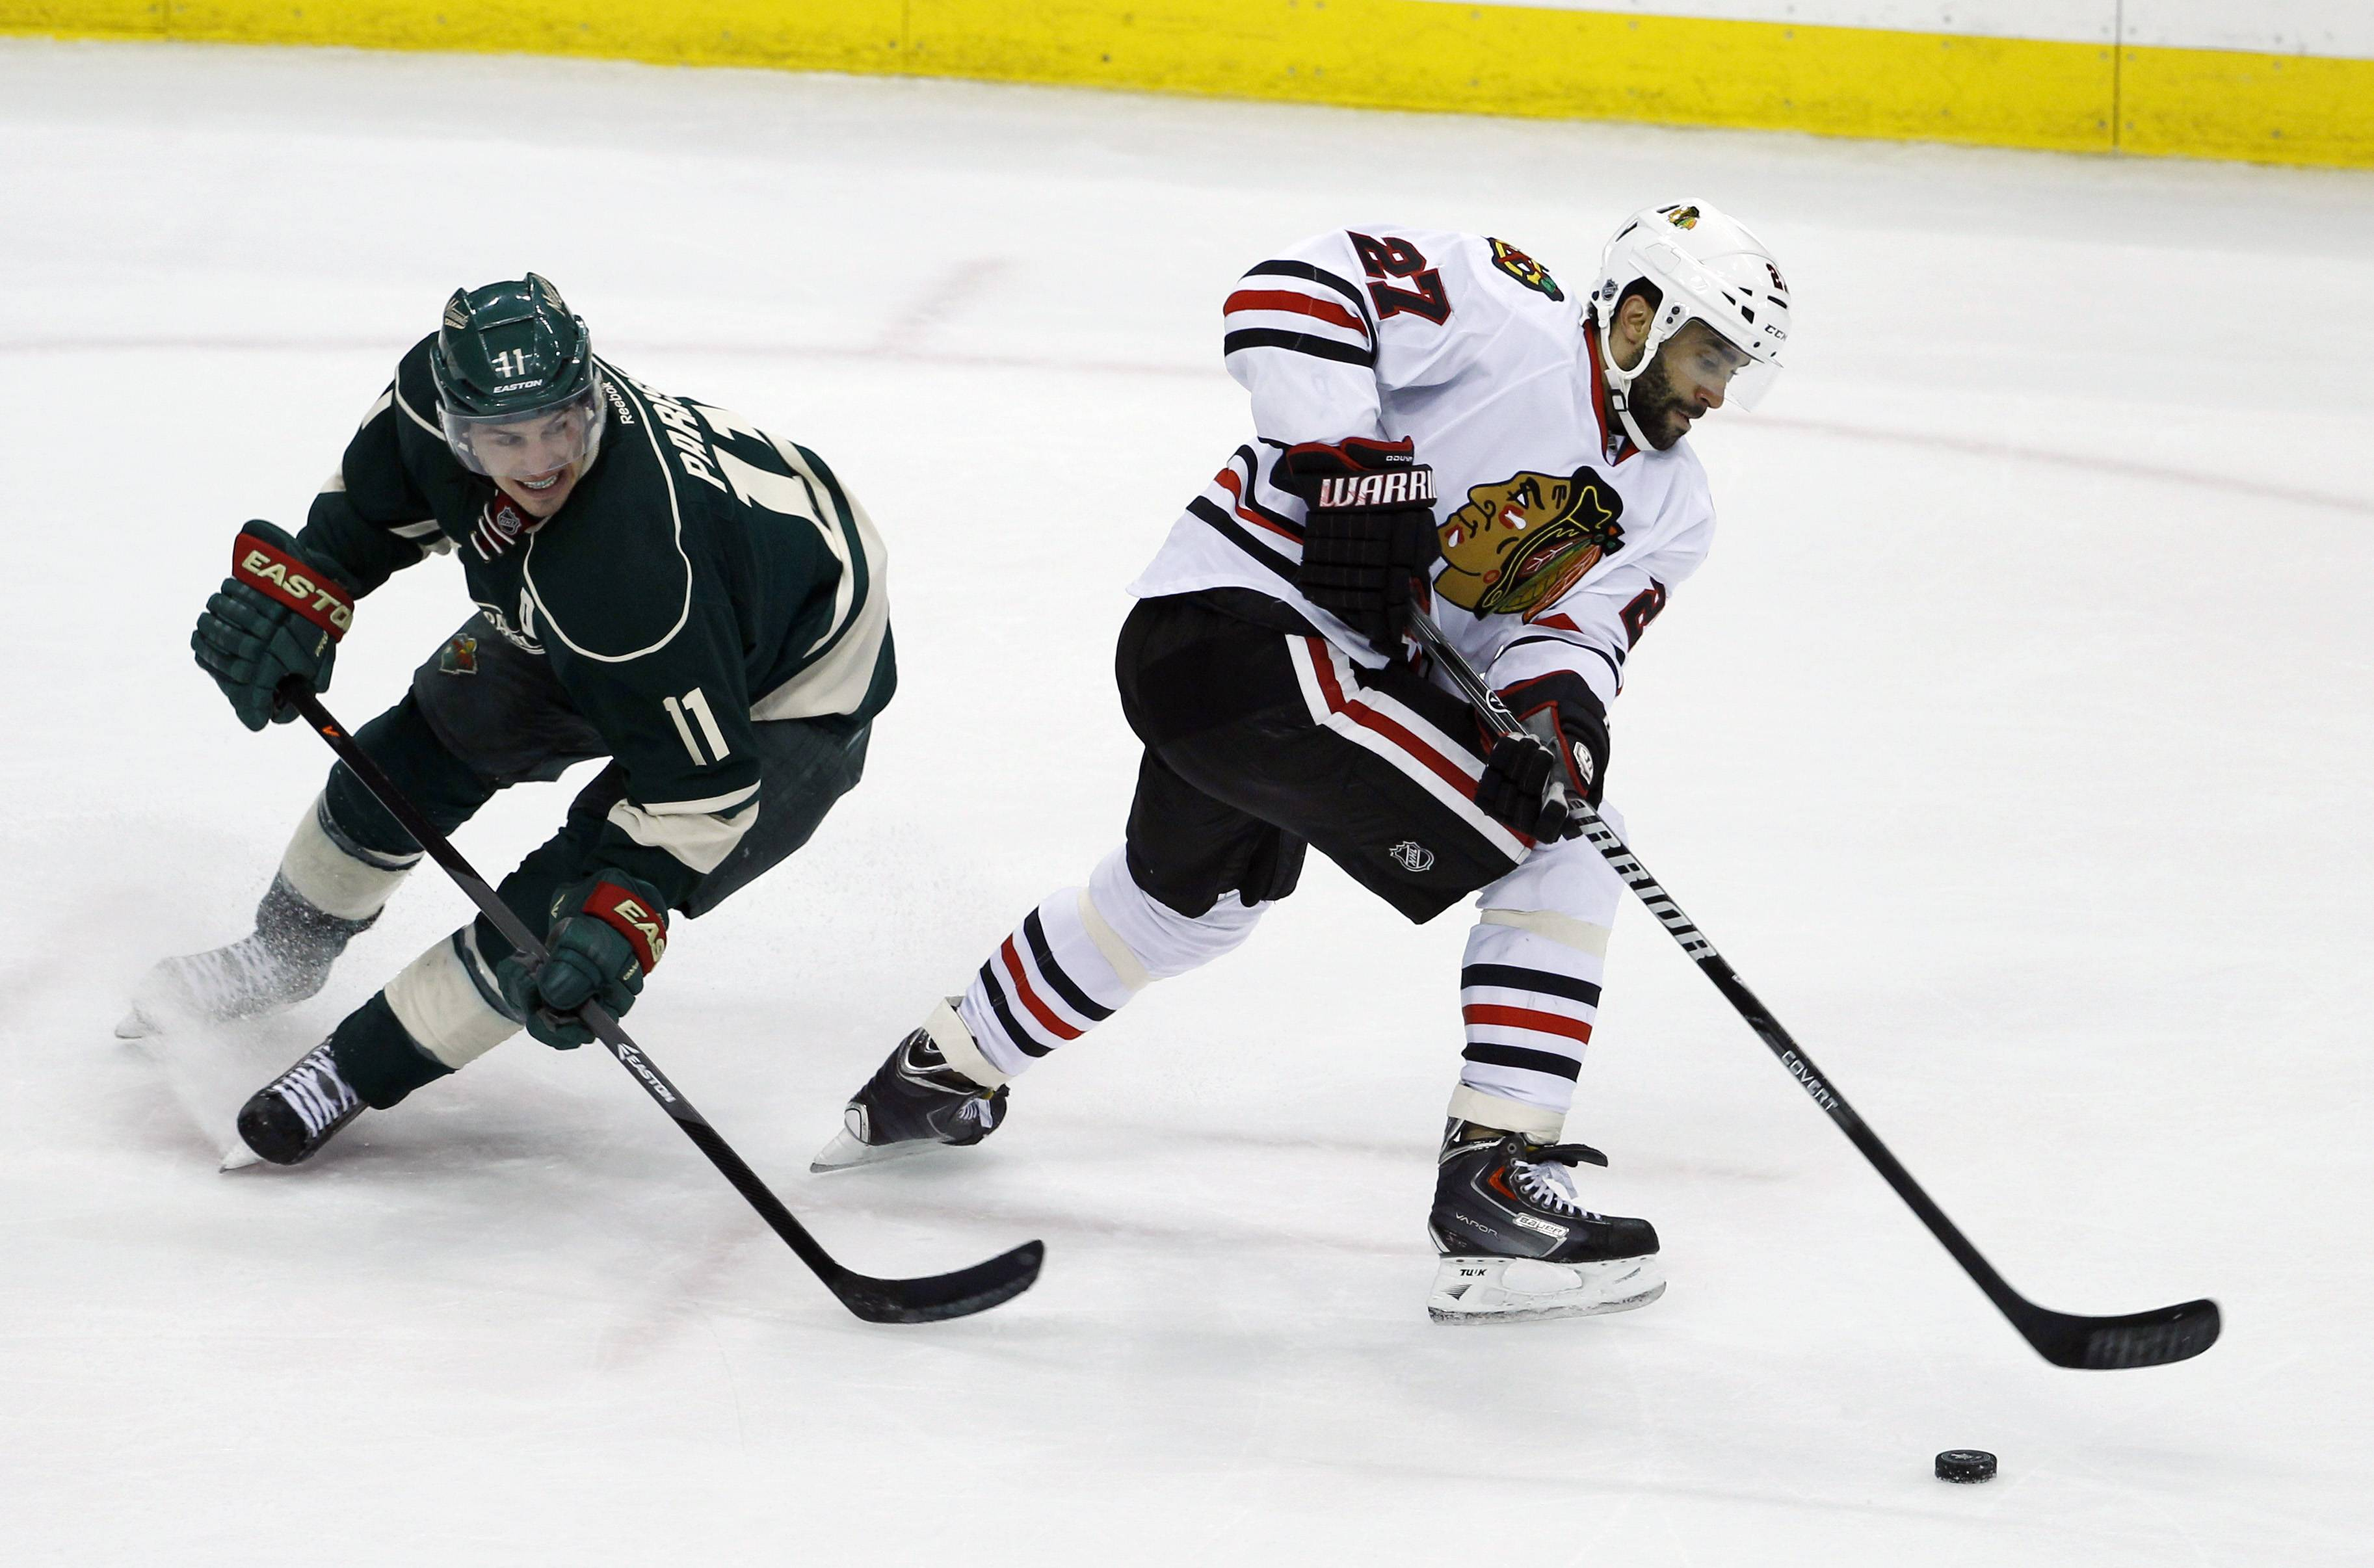 Chicago Blackhawks defenseman Johnny Oduya (27), of Sweden, steals the puck from Minnesota Wild left wing Zach Parise (11) during the second period.